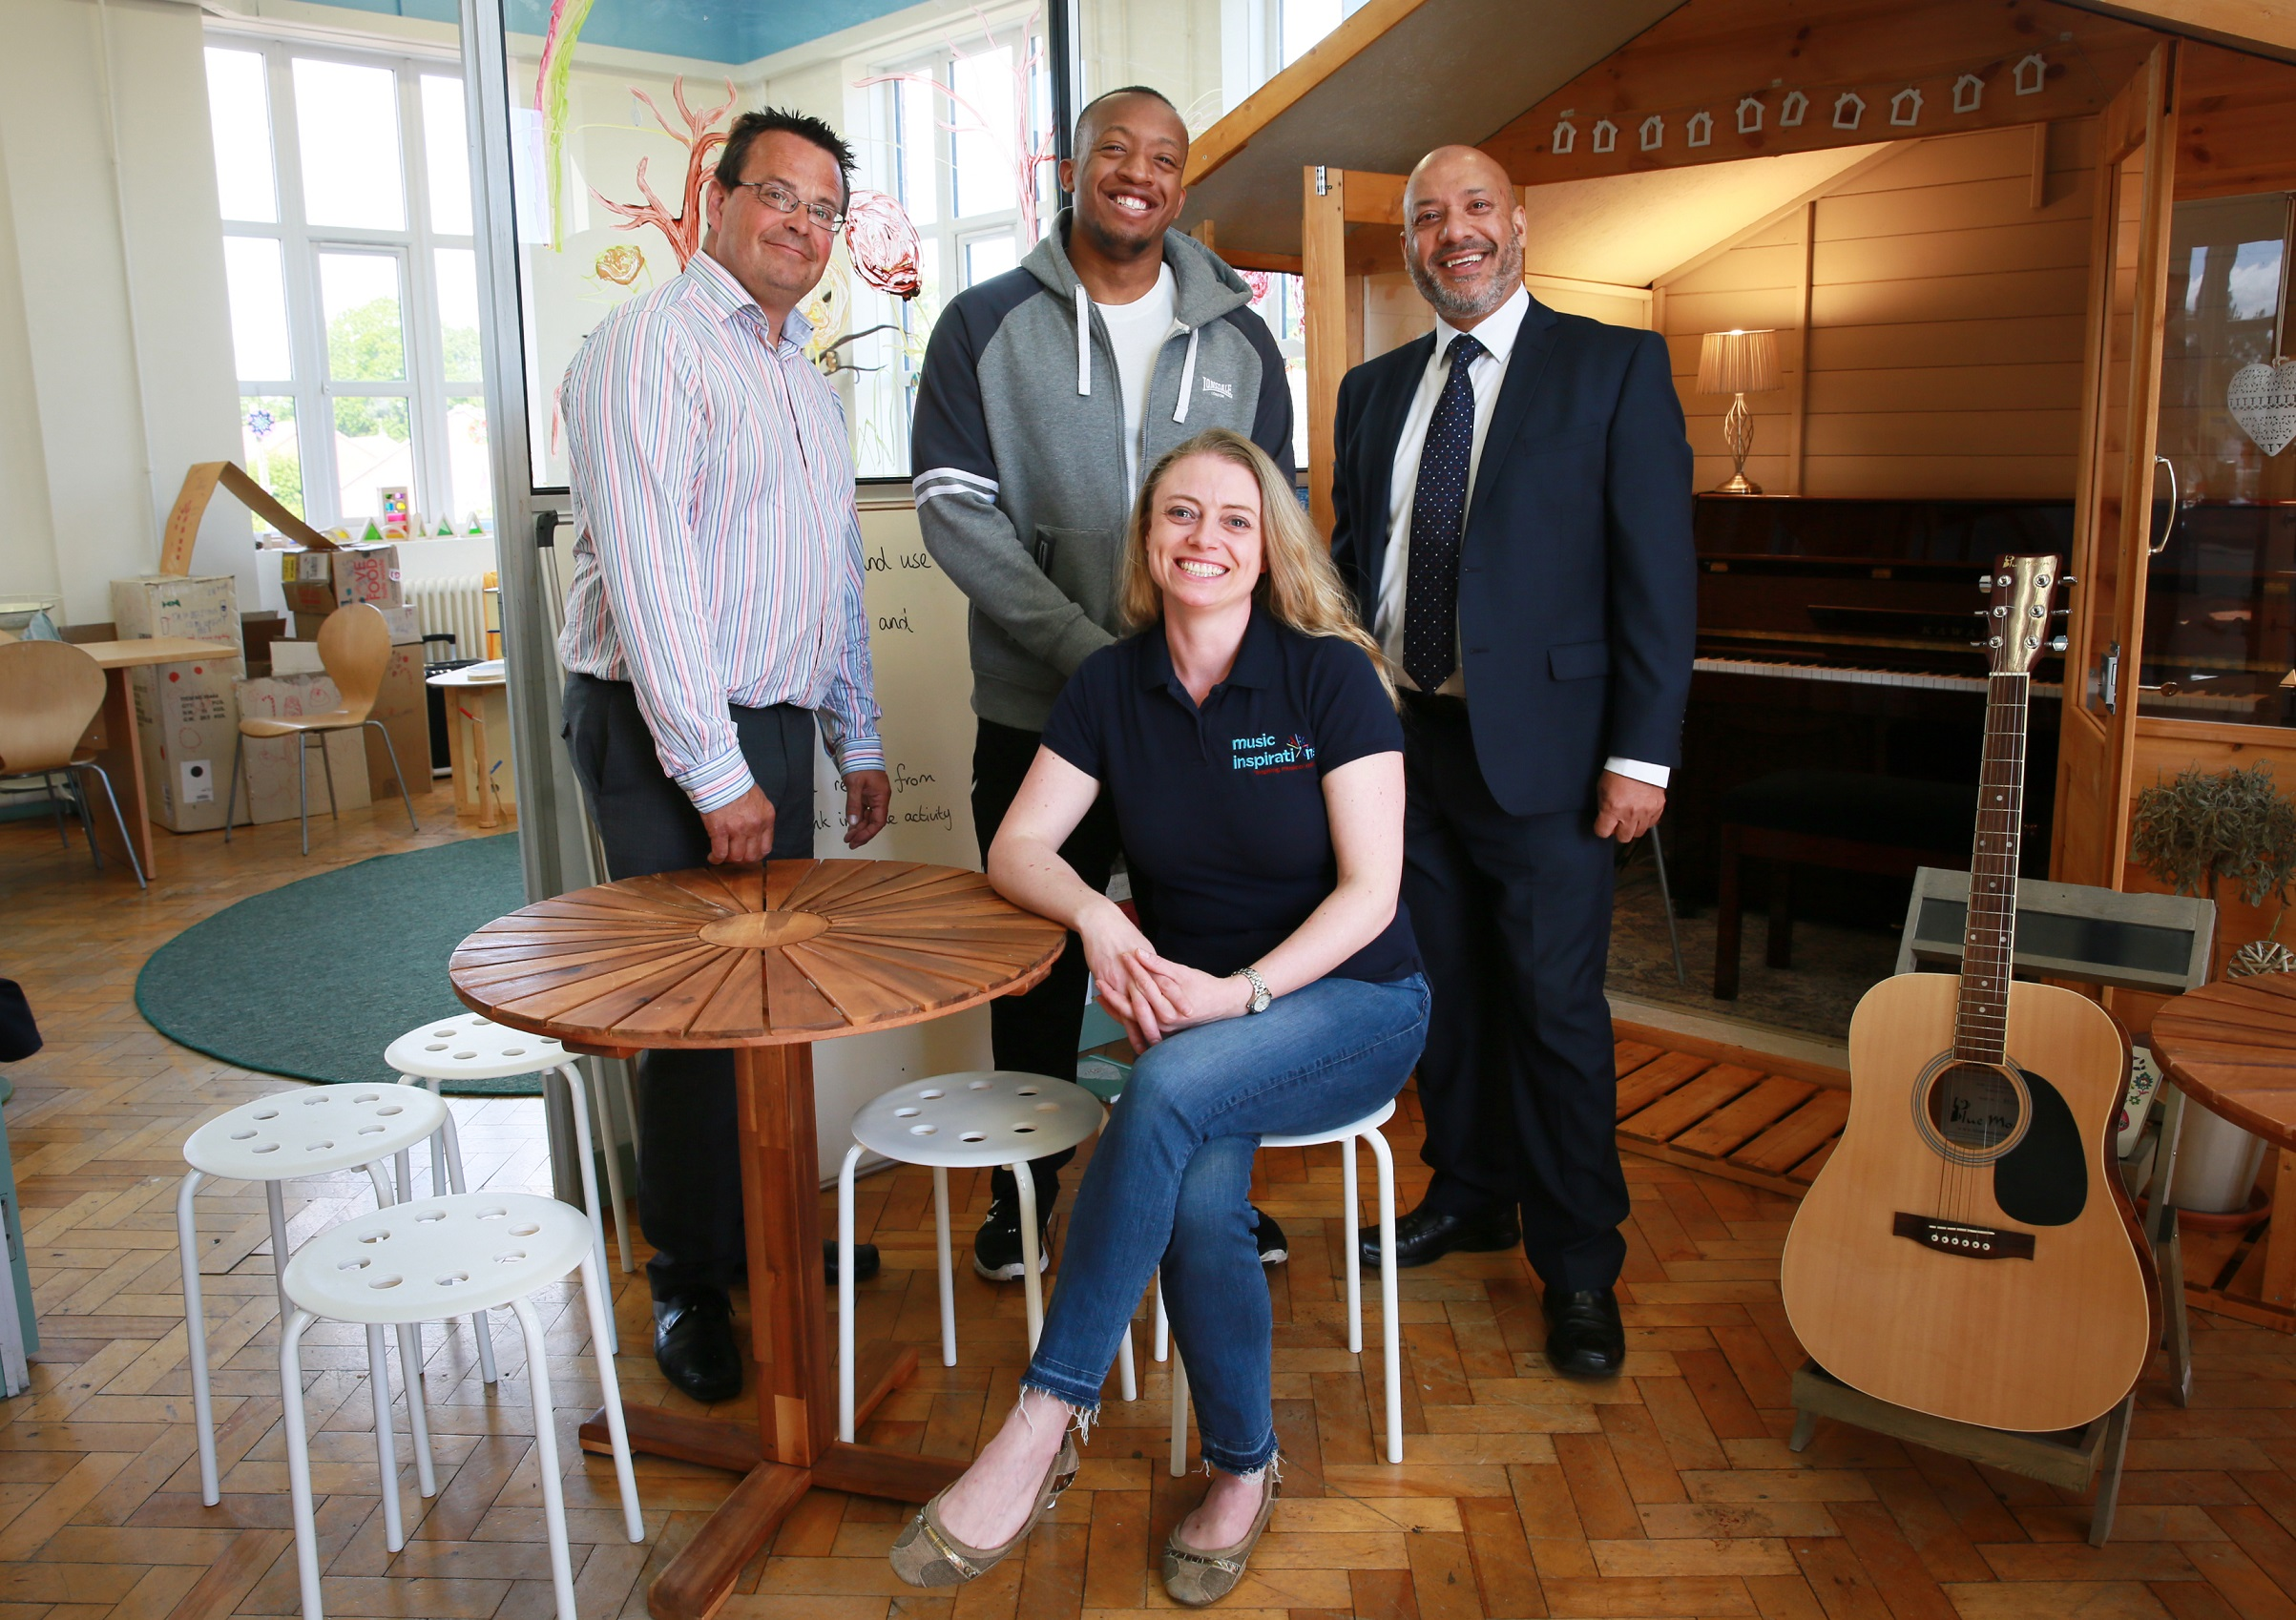 Inspirations Central owner Ruth Douglas welcomes (from left to right) Adrian Green(Unity Enterprise manager), Ali Akbor (Unity Homes and Enterprise chief executive) and Michael Kamara (C'Town Studio owner) to her new premises